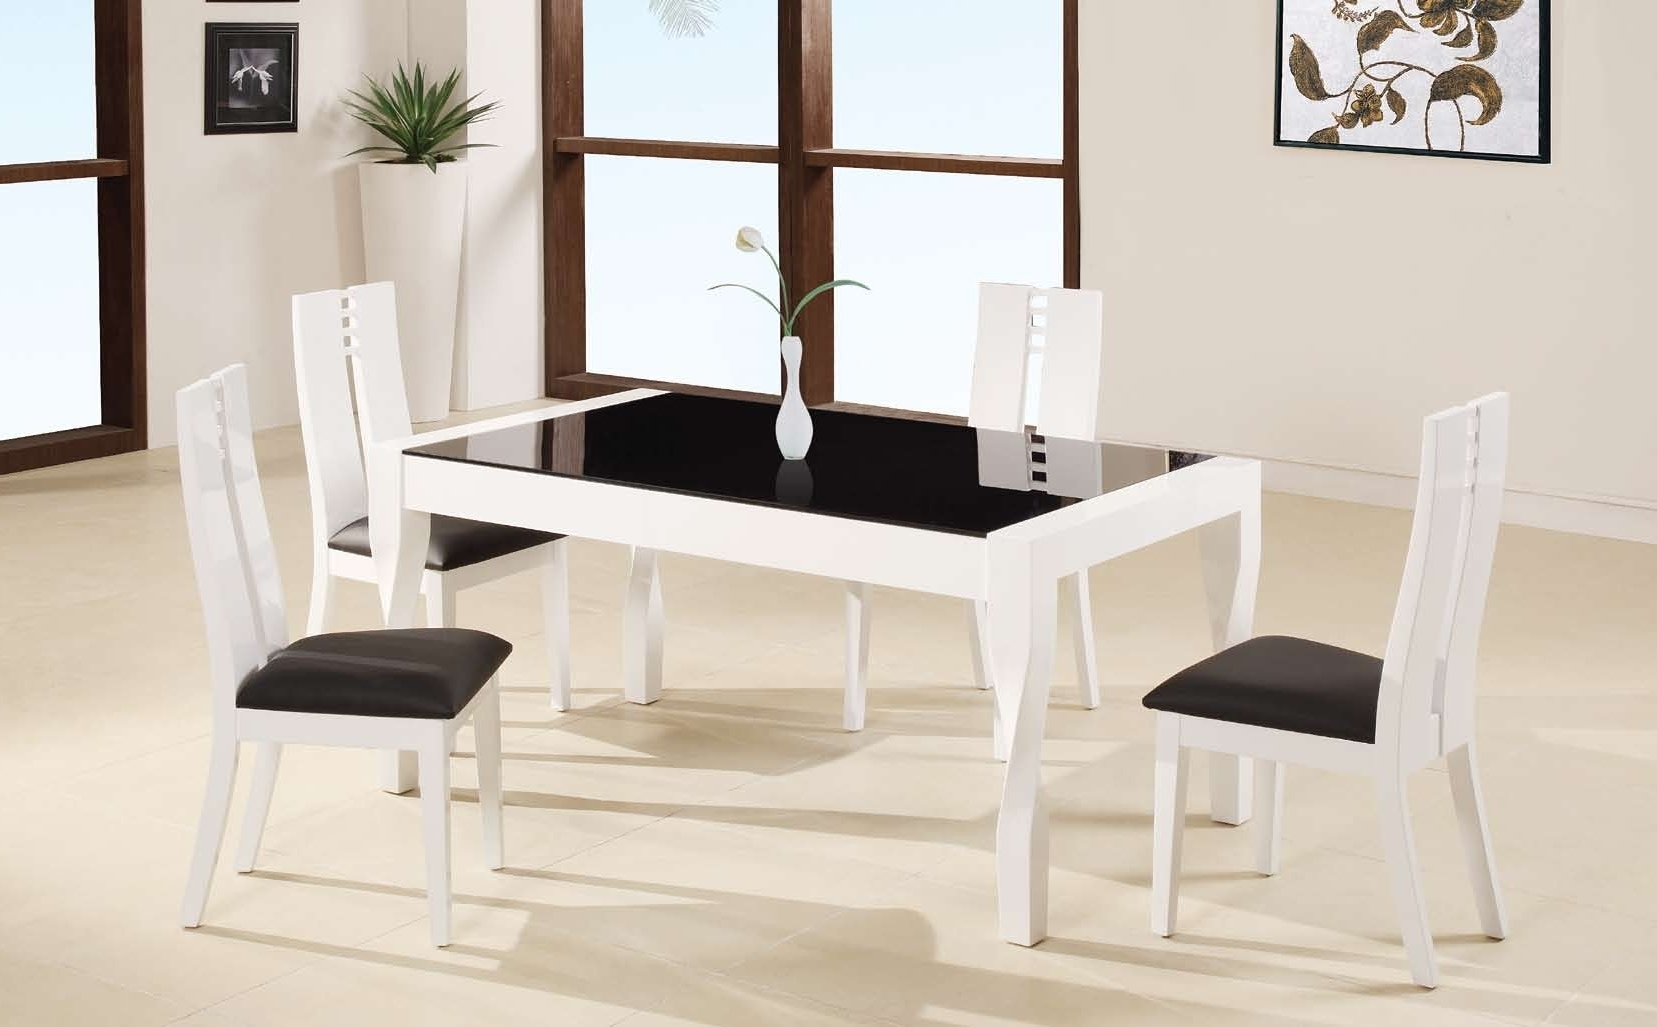 Cream Lacquer Dining Tables With Recent White Lacquer Teak Wood Dining Table Using Black Glass Top Placed On (View 4 of 25)